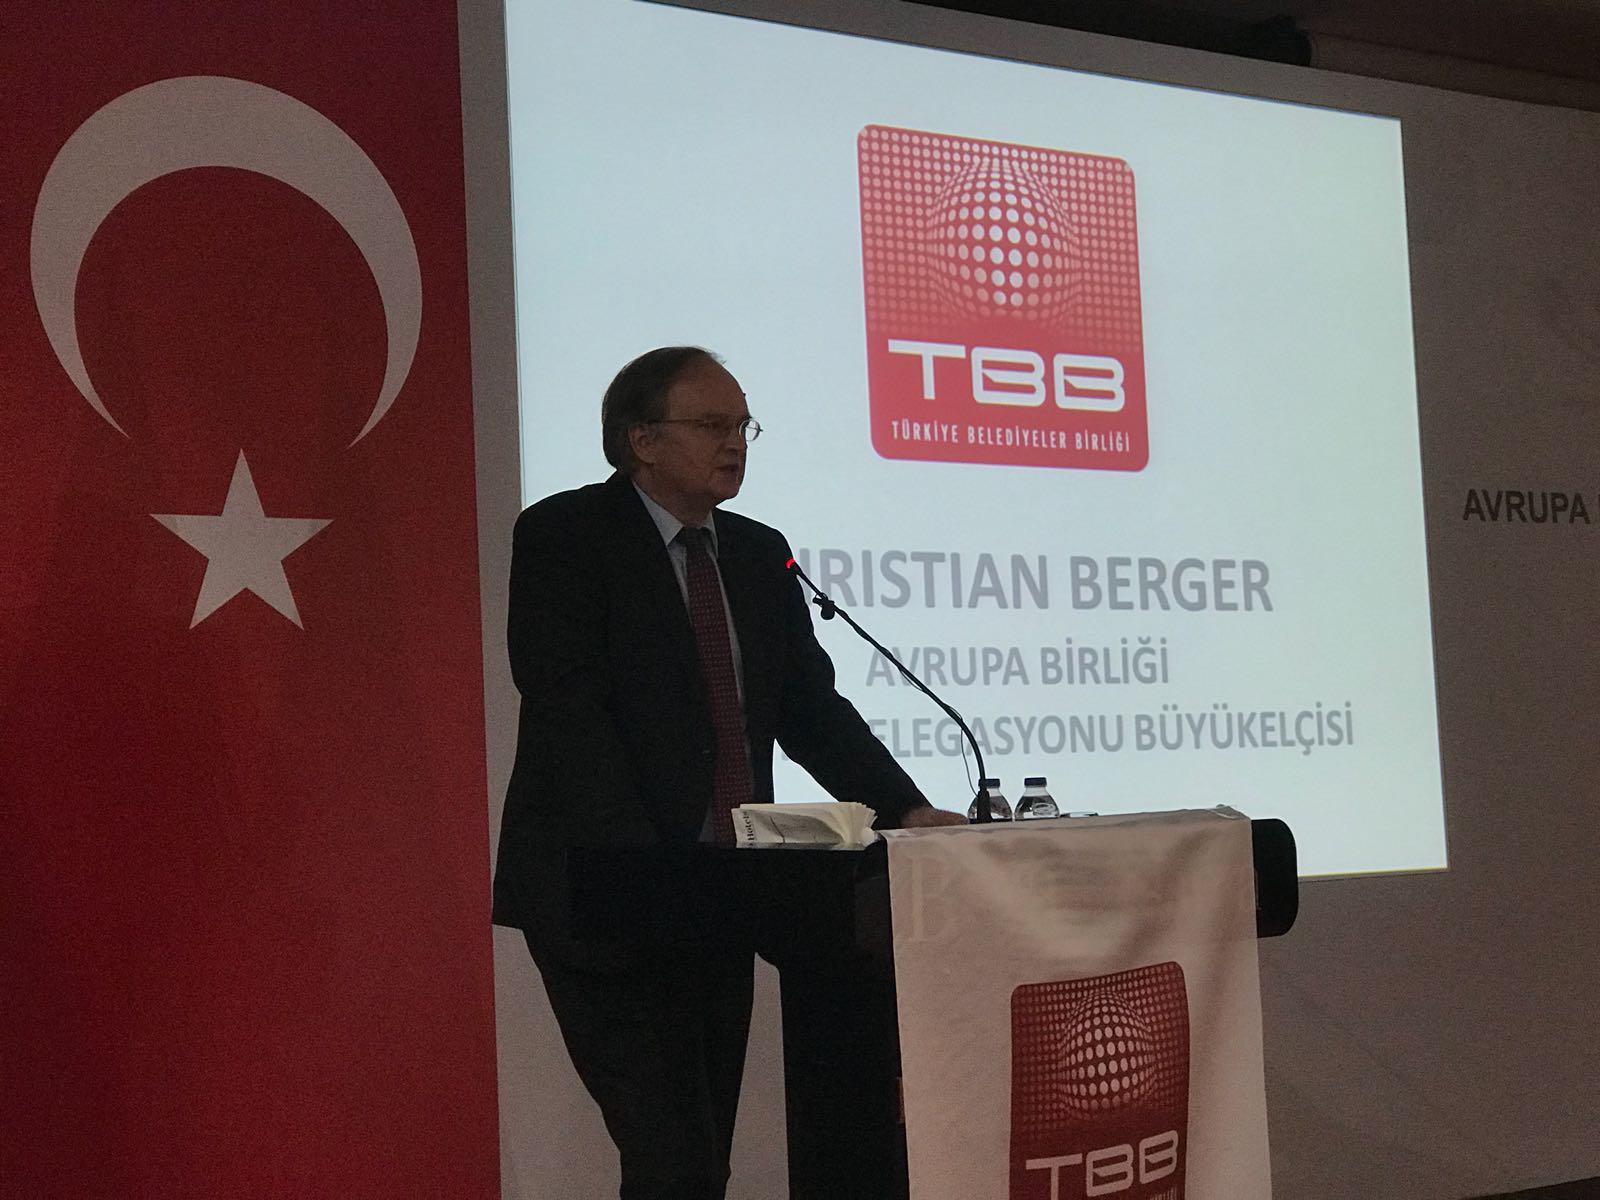 Ambassador Berger at the Mobility Week Launch event in Antalya